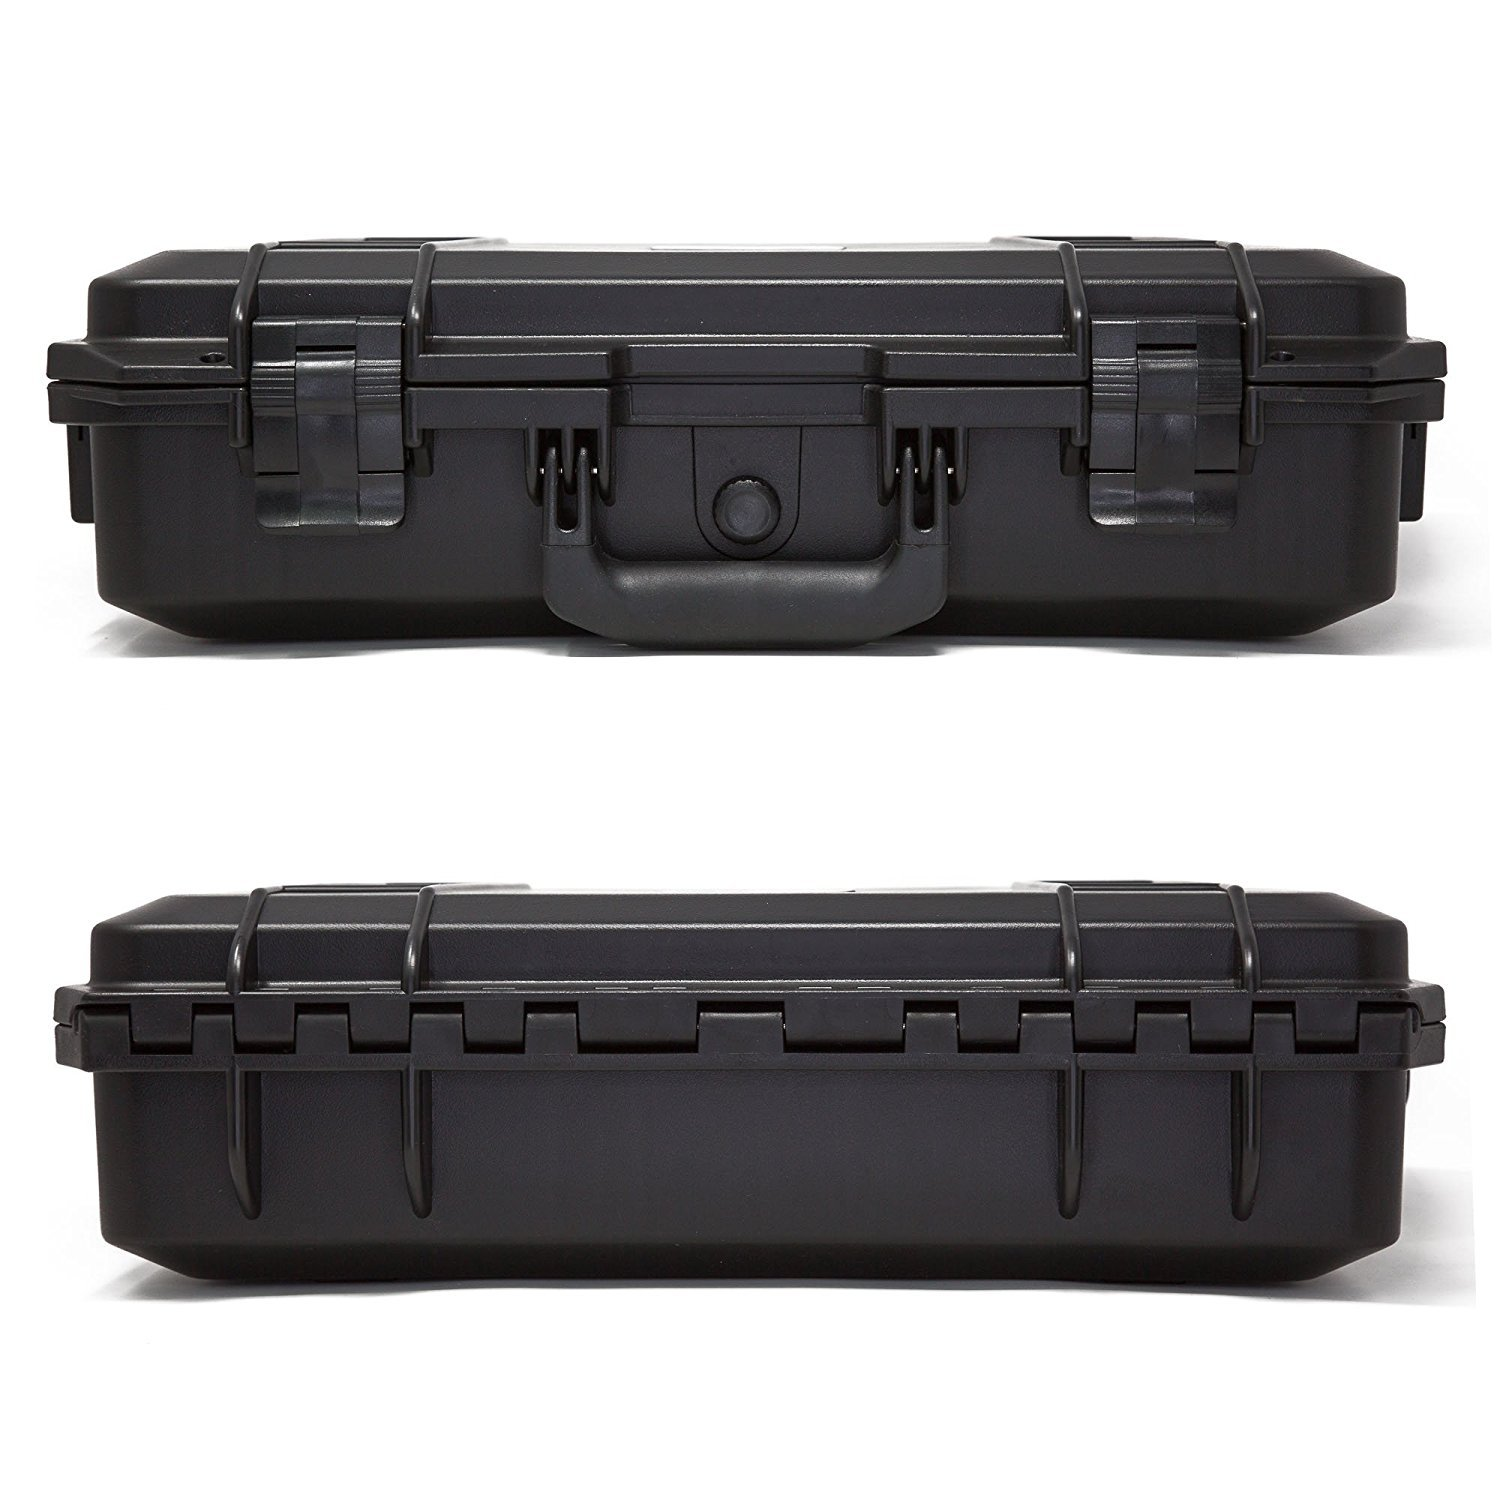 Ultimaxx Water Proof Rugged Compact Storage Hard Case for DJI FPV VR Goggles and DJI Mavic Air + Fits Extra Accessories by Ultimaxx (Image #5)